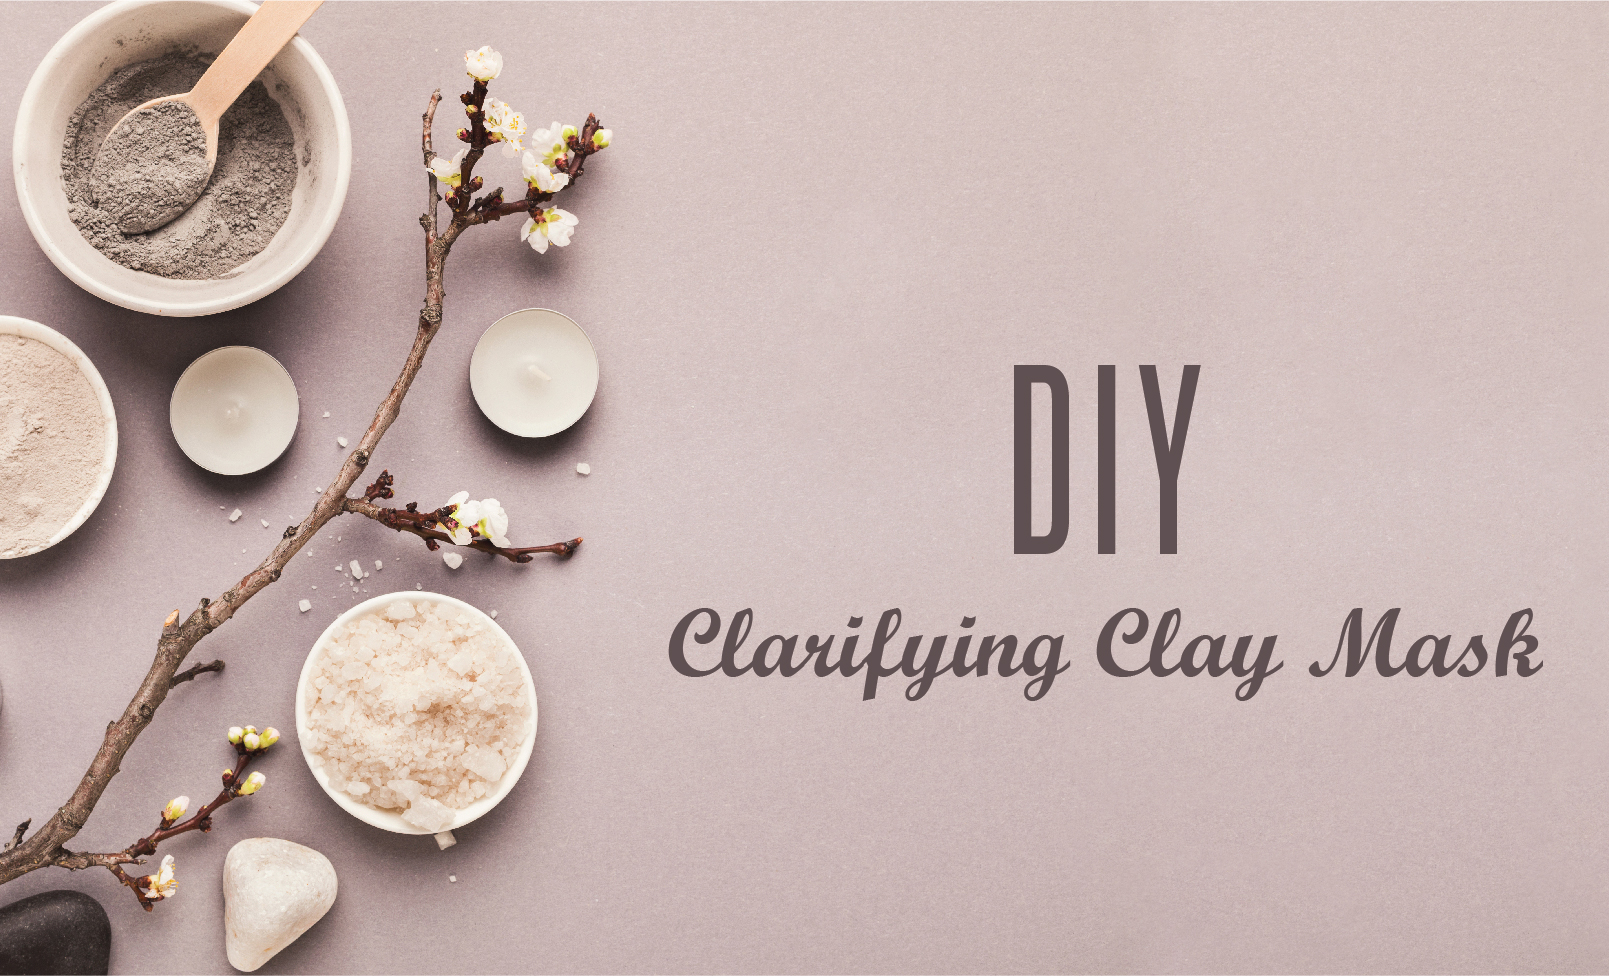 DIY Clarifying Clay Mask